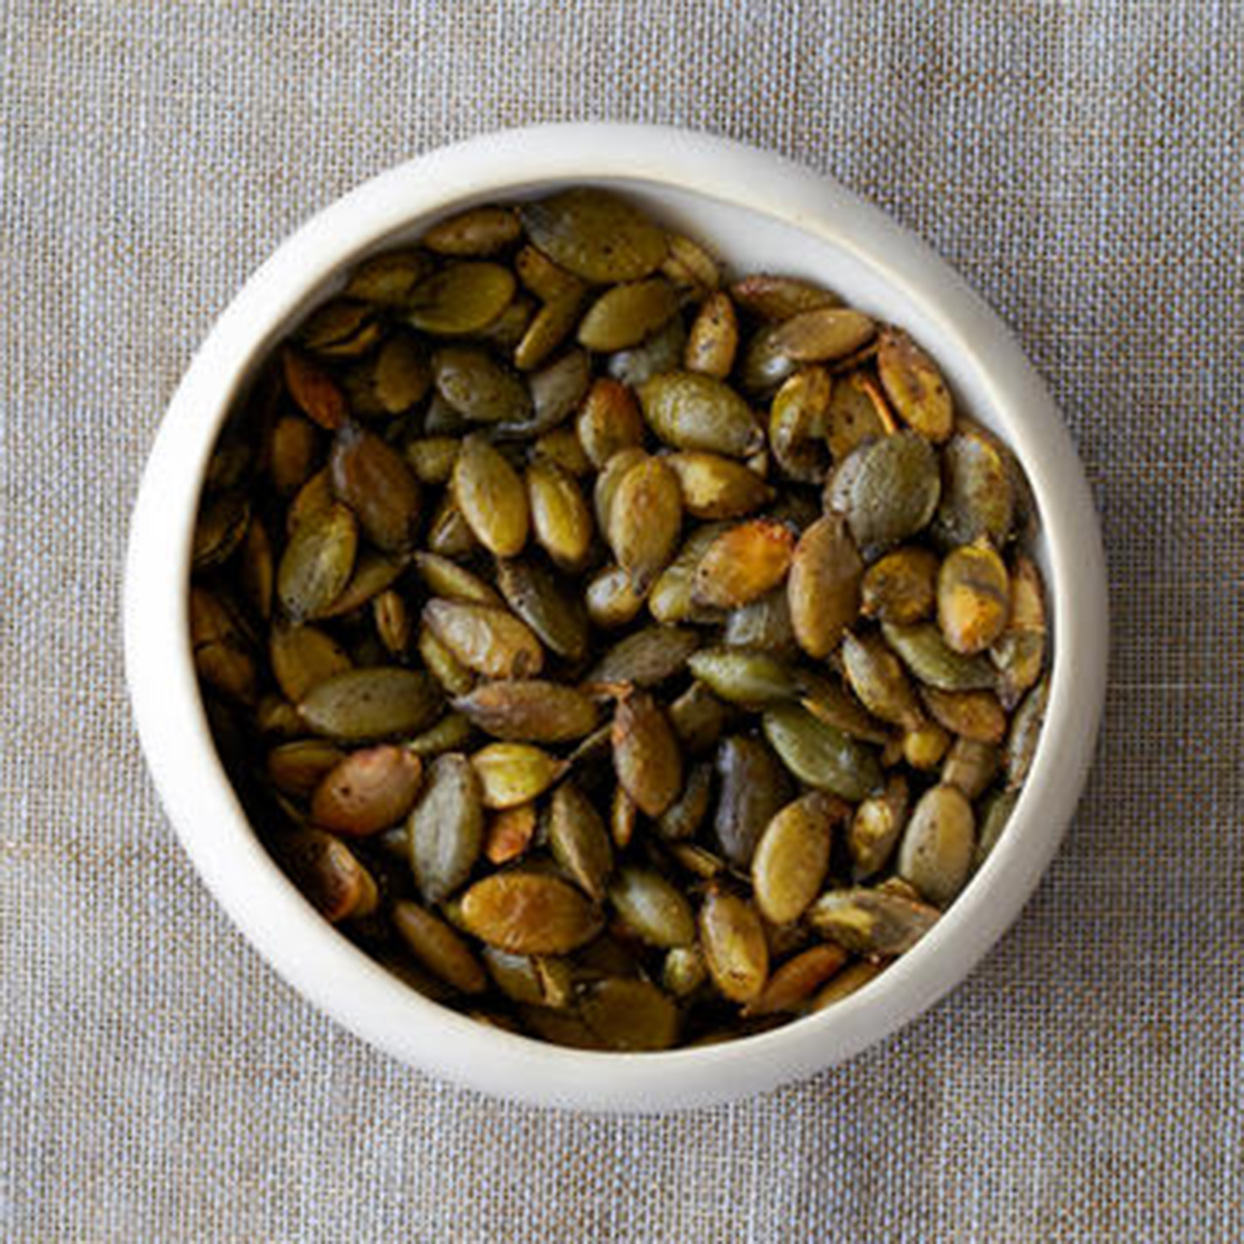 Healthy Snack: Roasted, Lightly Salted Pumpkin Seeds